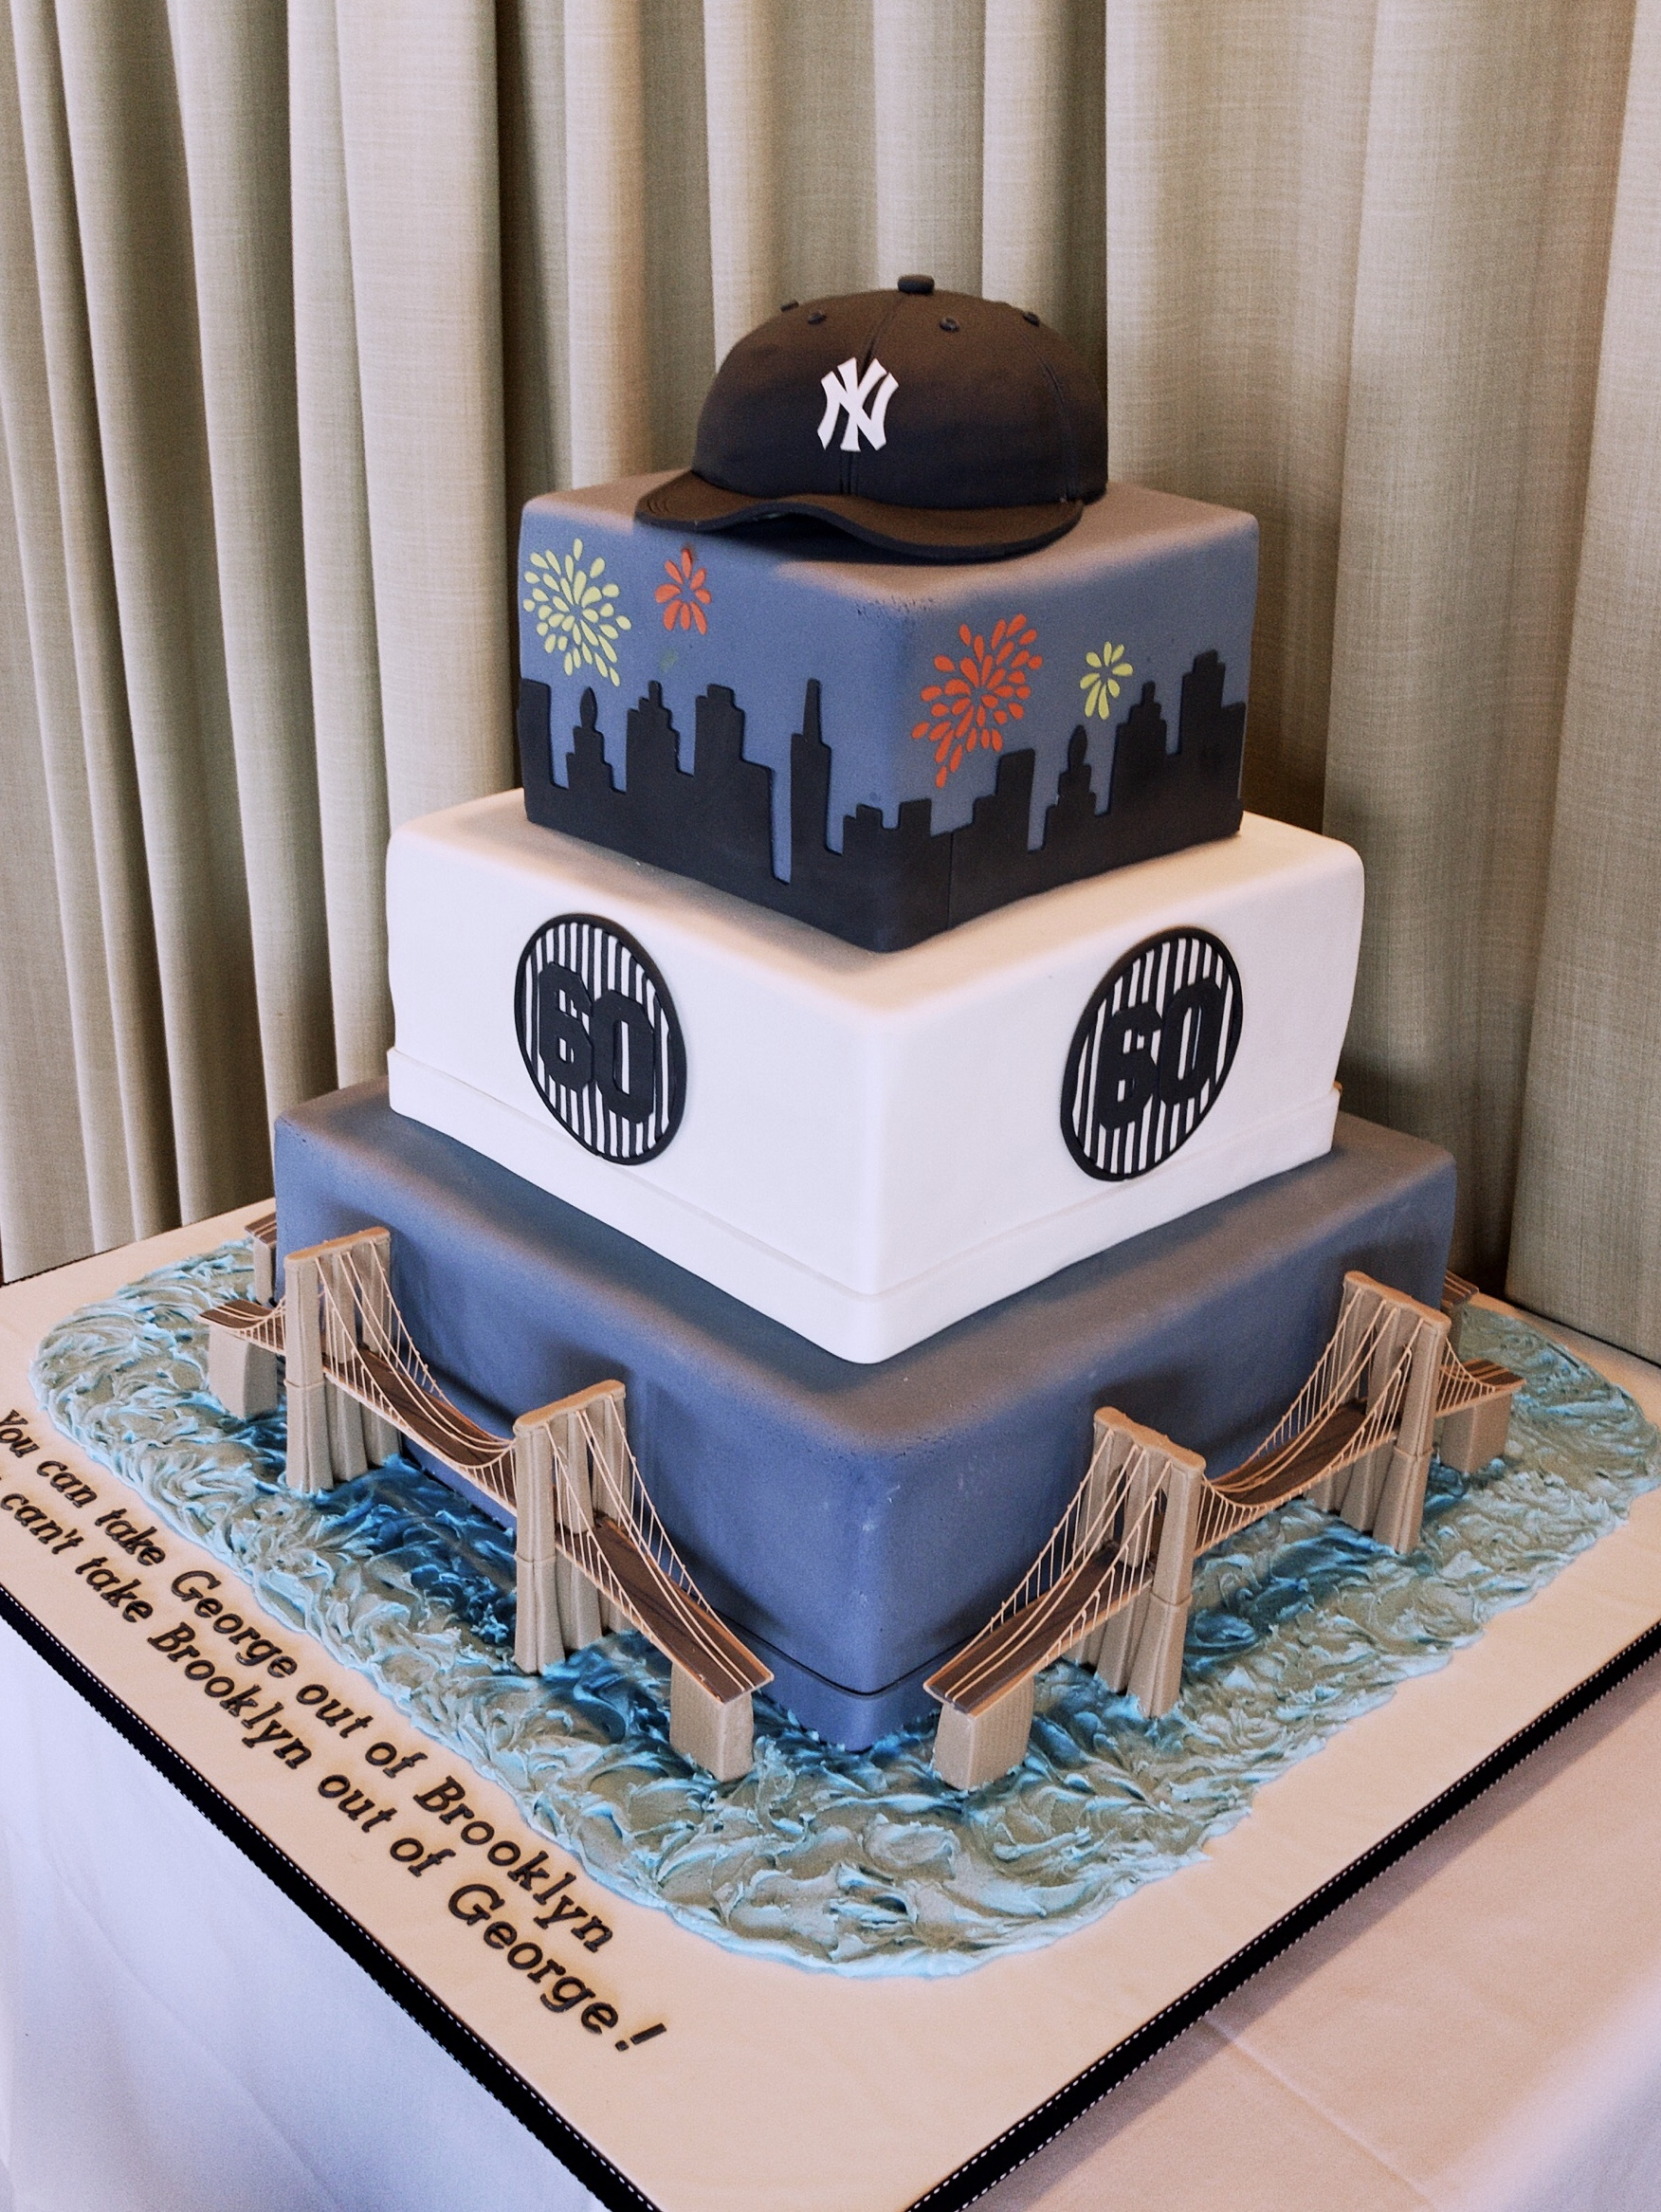 A Brooklyn boy's 60th birthday...with a nod to the Yankees